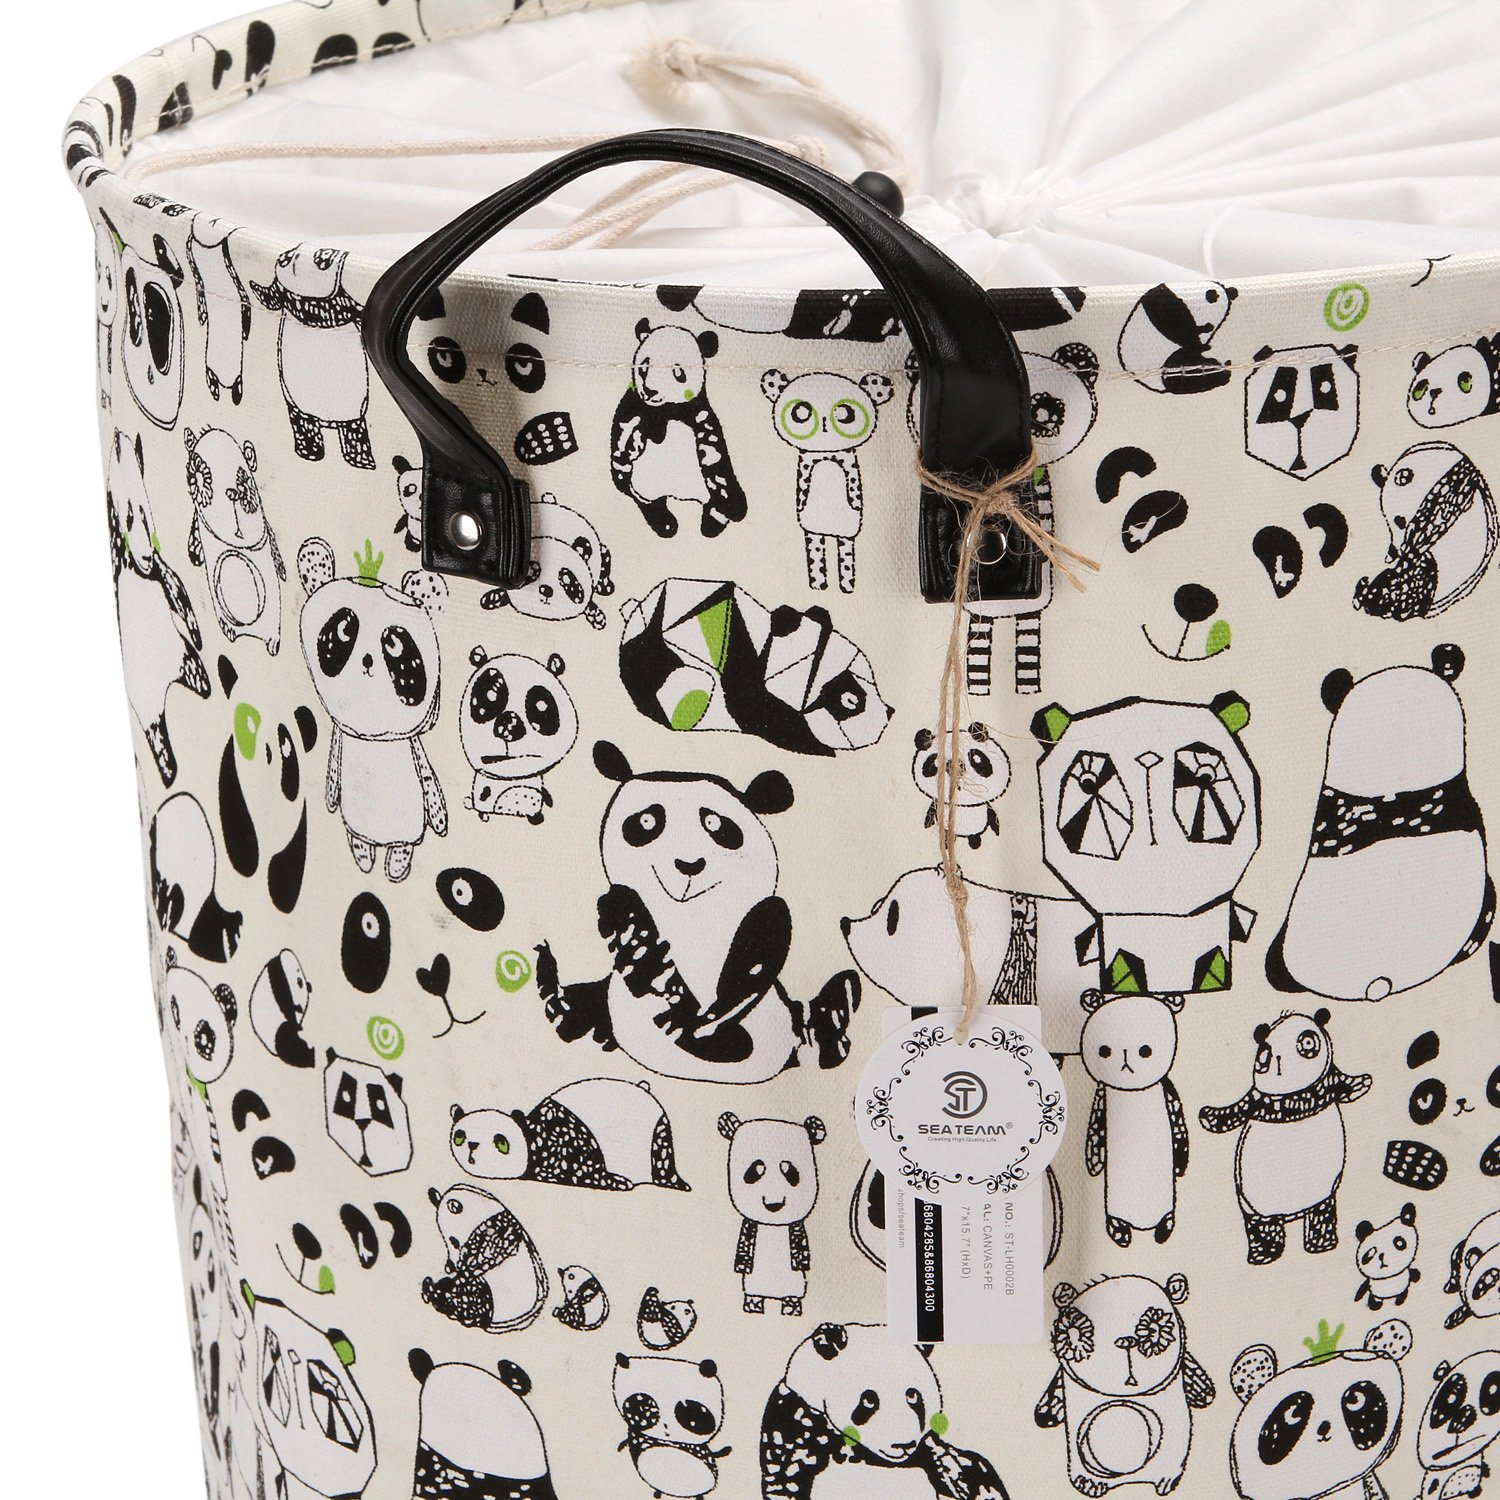 Sea Team 19.7'' Large Size Stylish Panda Design Canvas & Linen Fabric Laundry Hamper Storage Basket with Premium PU Leather Handles for Kid's Room, Drawstring Cover with Waterproof Coating by Sea Team (Image #6)